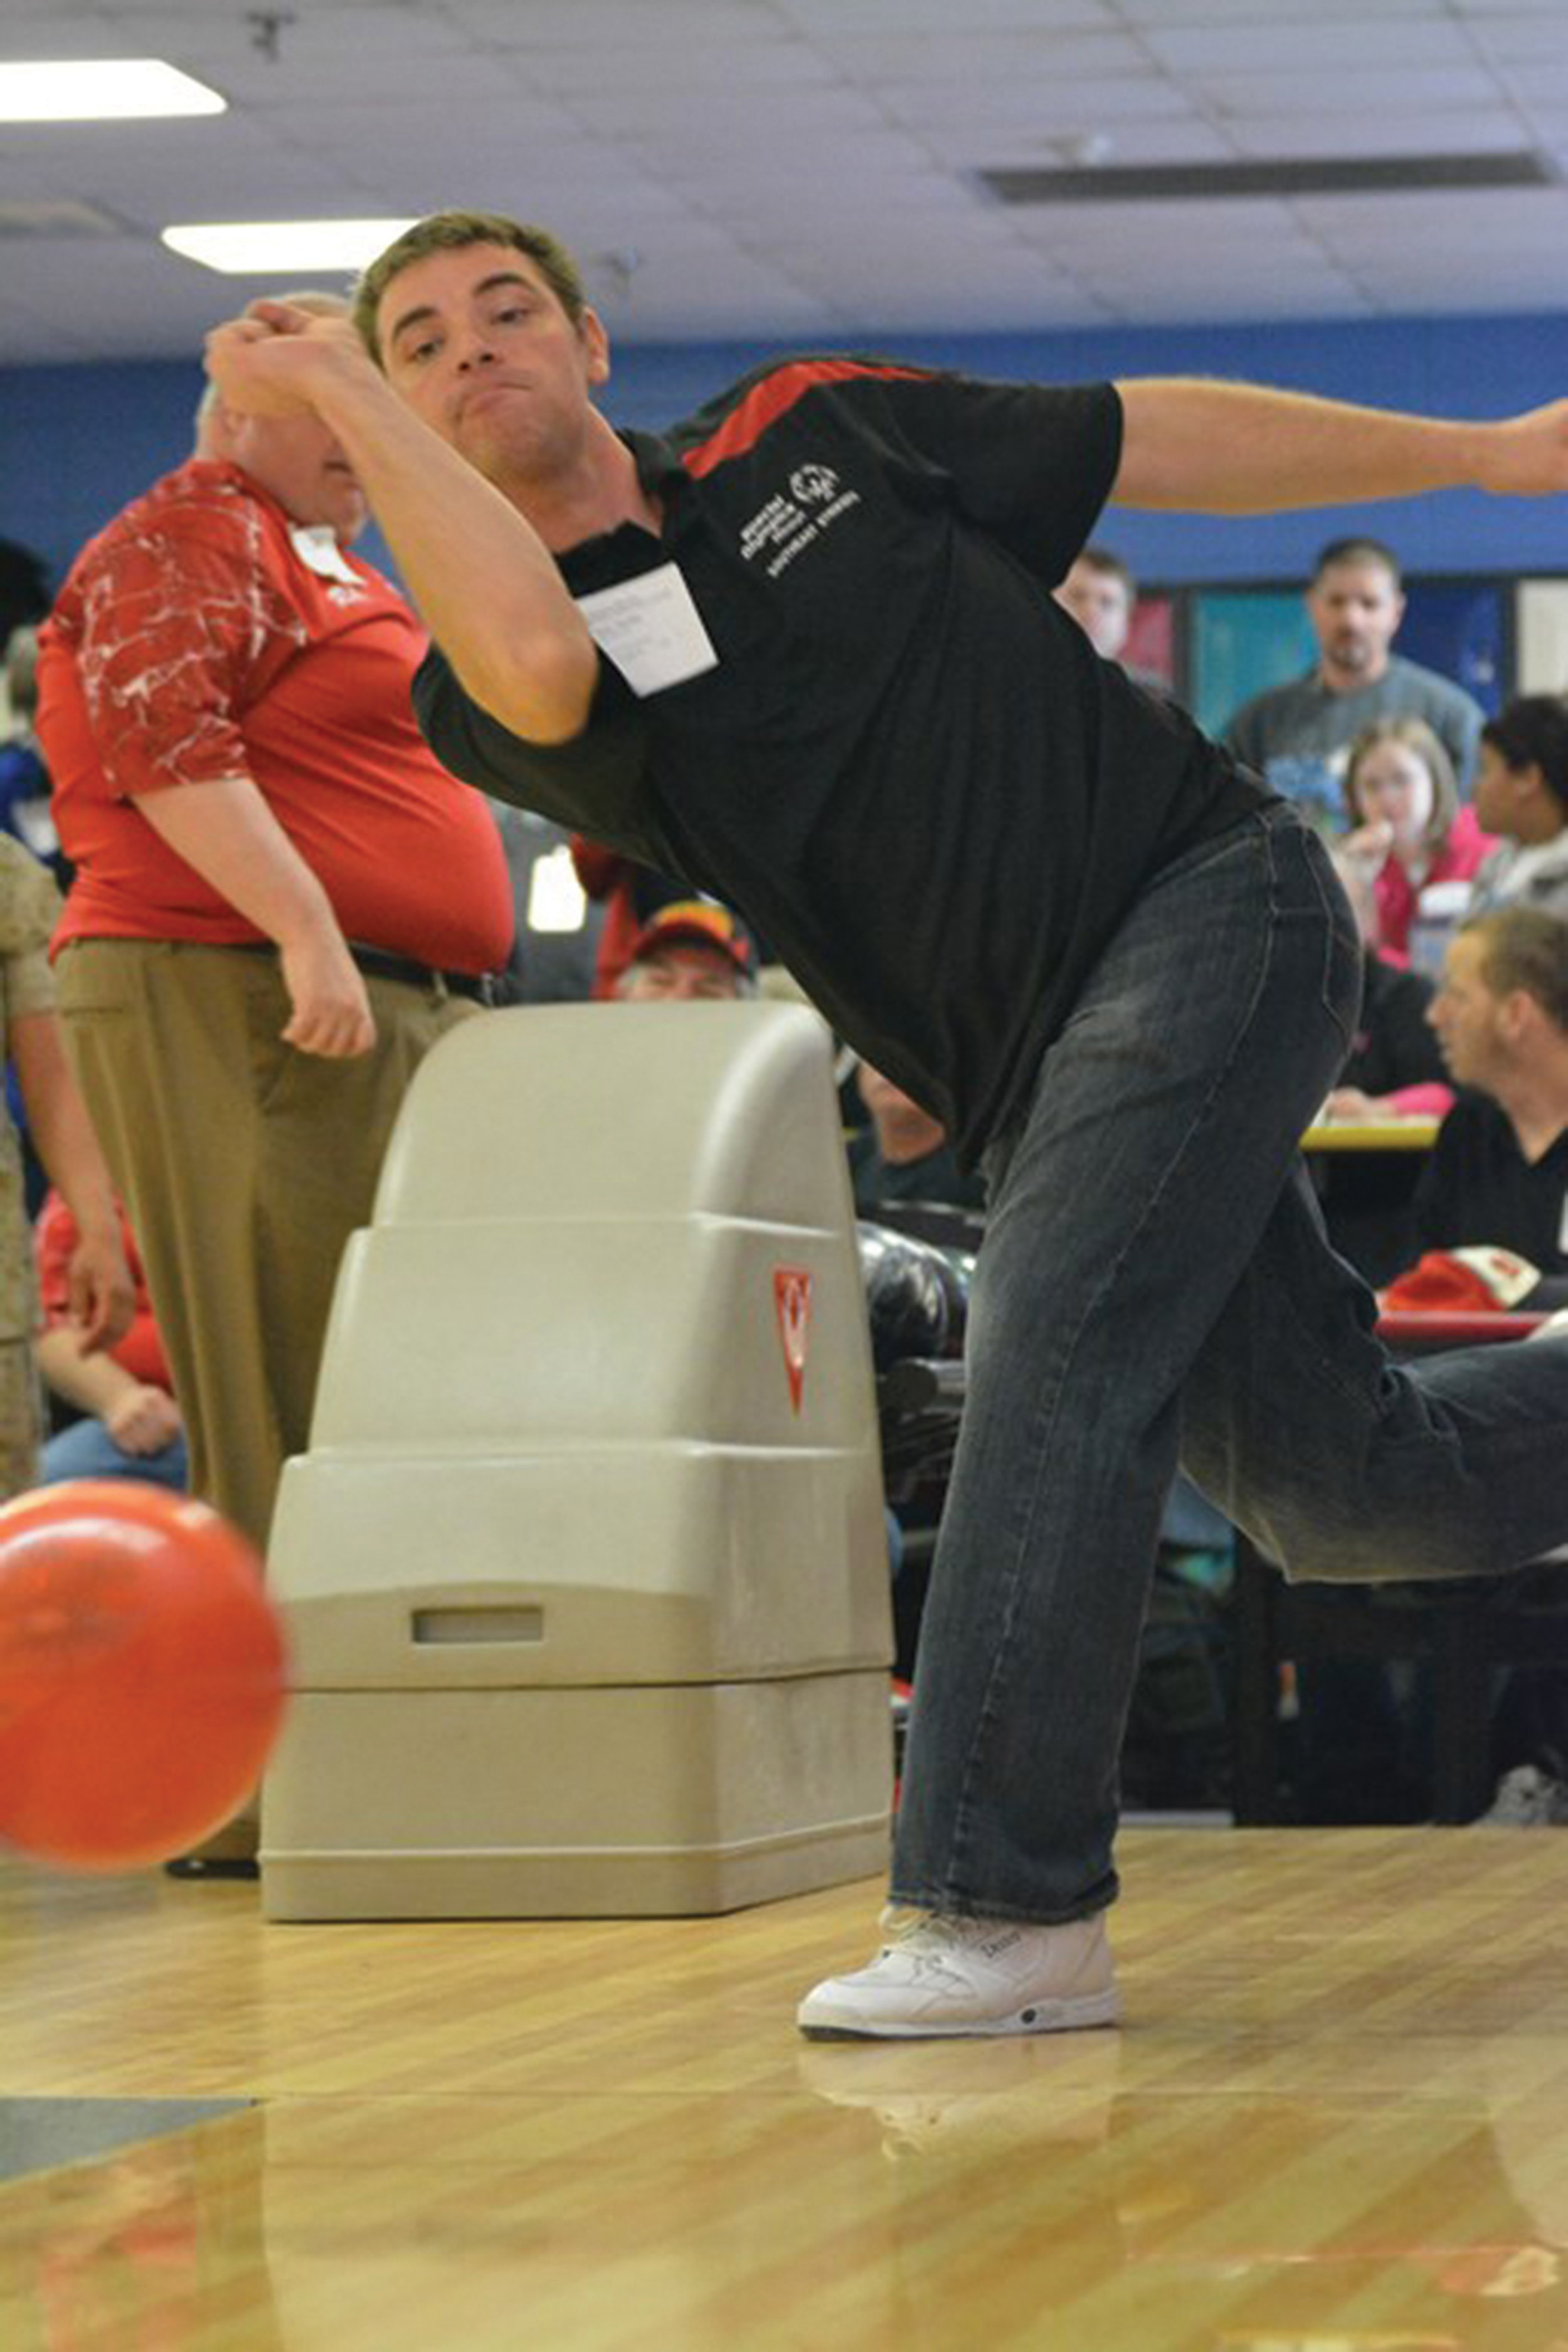 Bowling competition at State Indoor Games at Daugherty Bowl on Fort Leonard Wood post